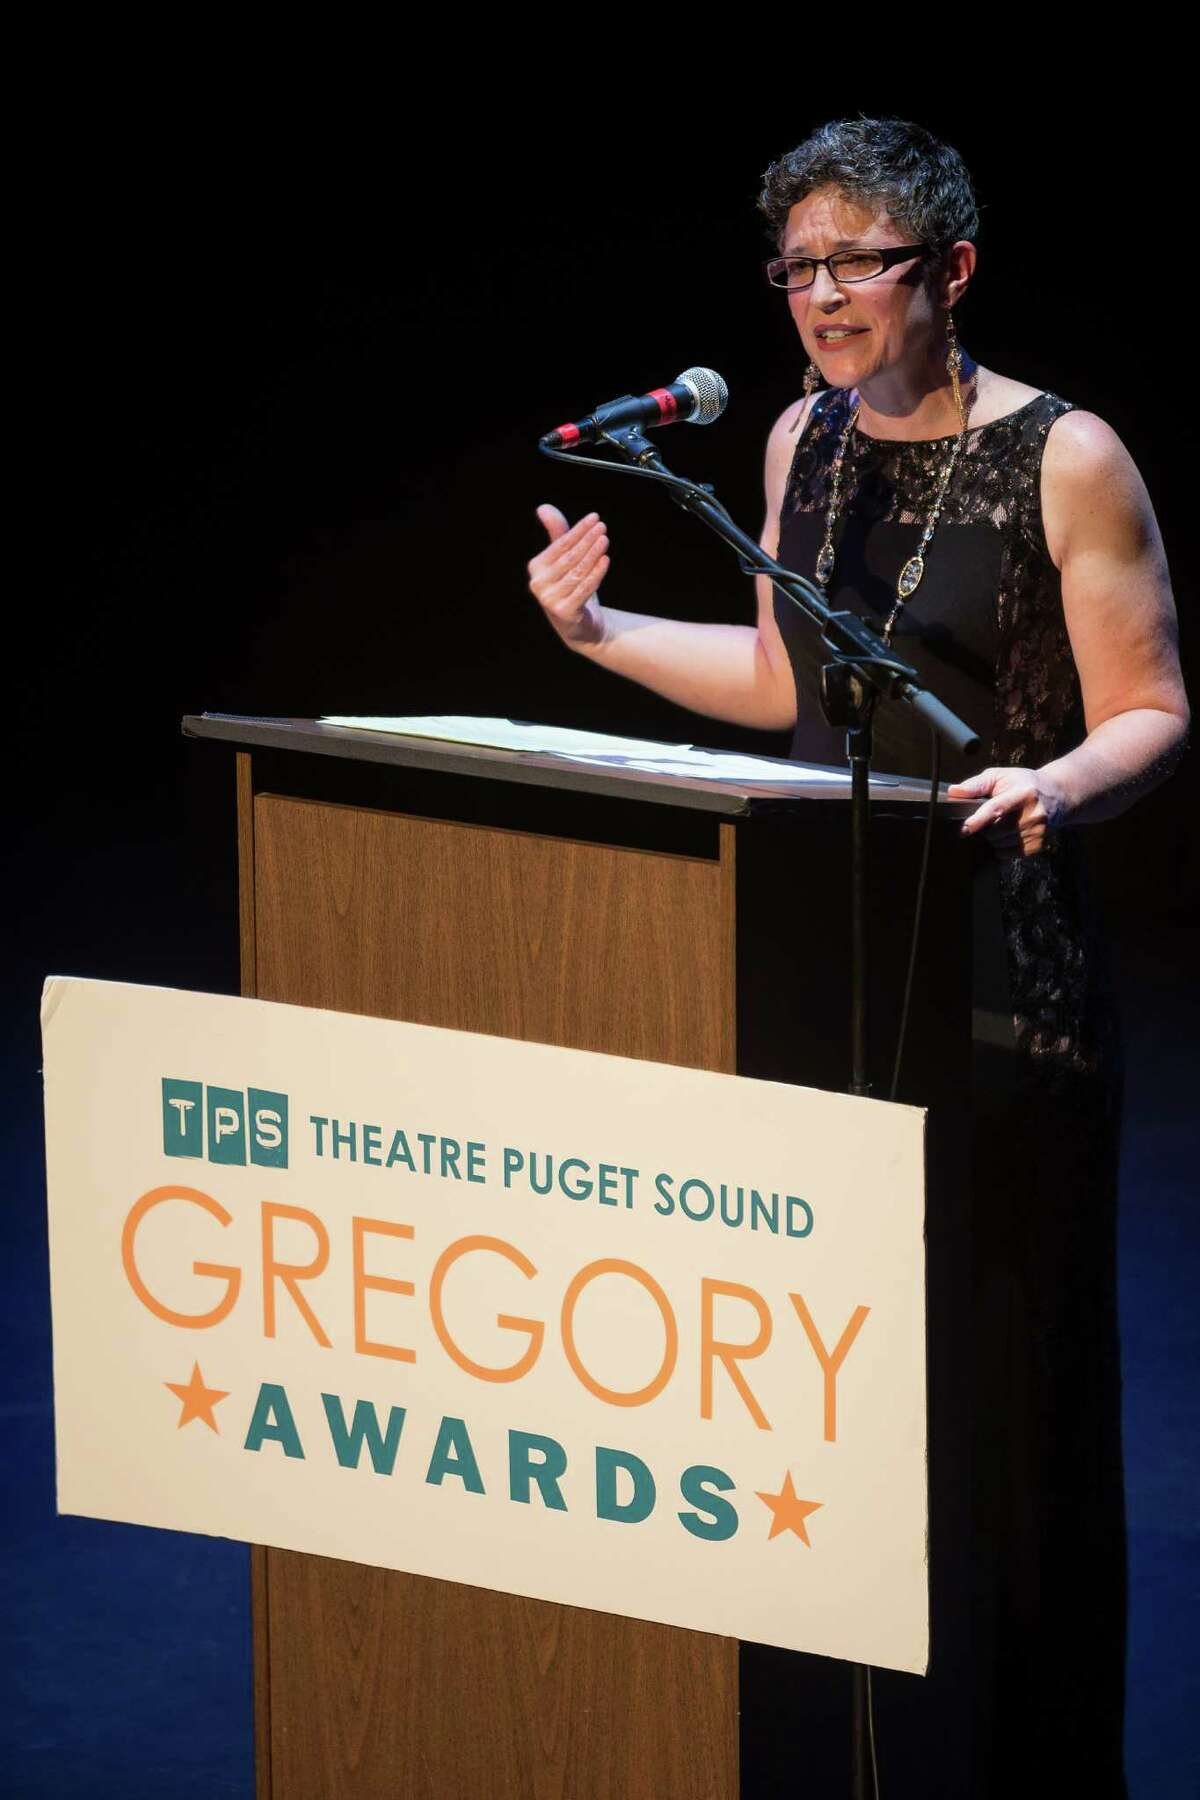 Executive Director Karen Lane at the Theatre Puget Sound's Sixth Annual Gregory Awards Monday, Oct. 20, 2014, at The Moore Theatre in Seattle. The Gregory Awards, which honors those dedicated to theater, has grown into a highly anticipated regional awards ceremony and a